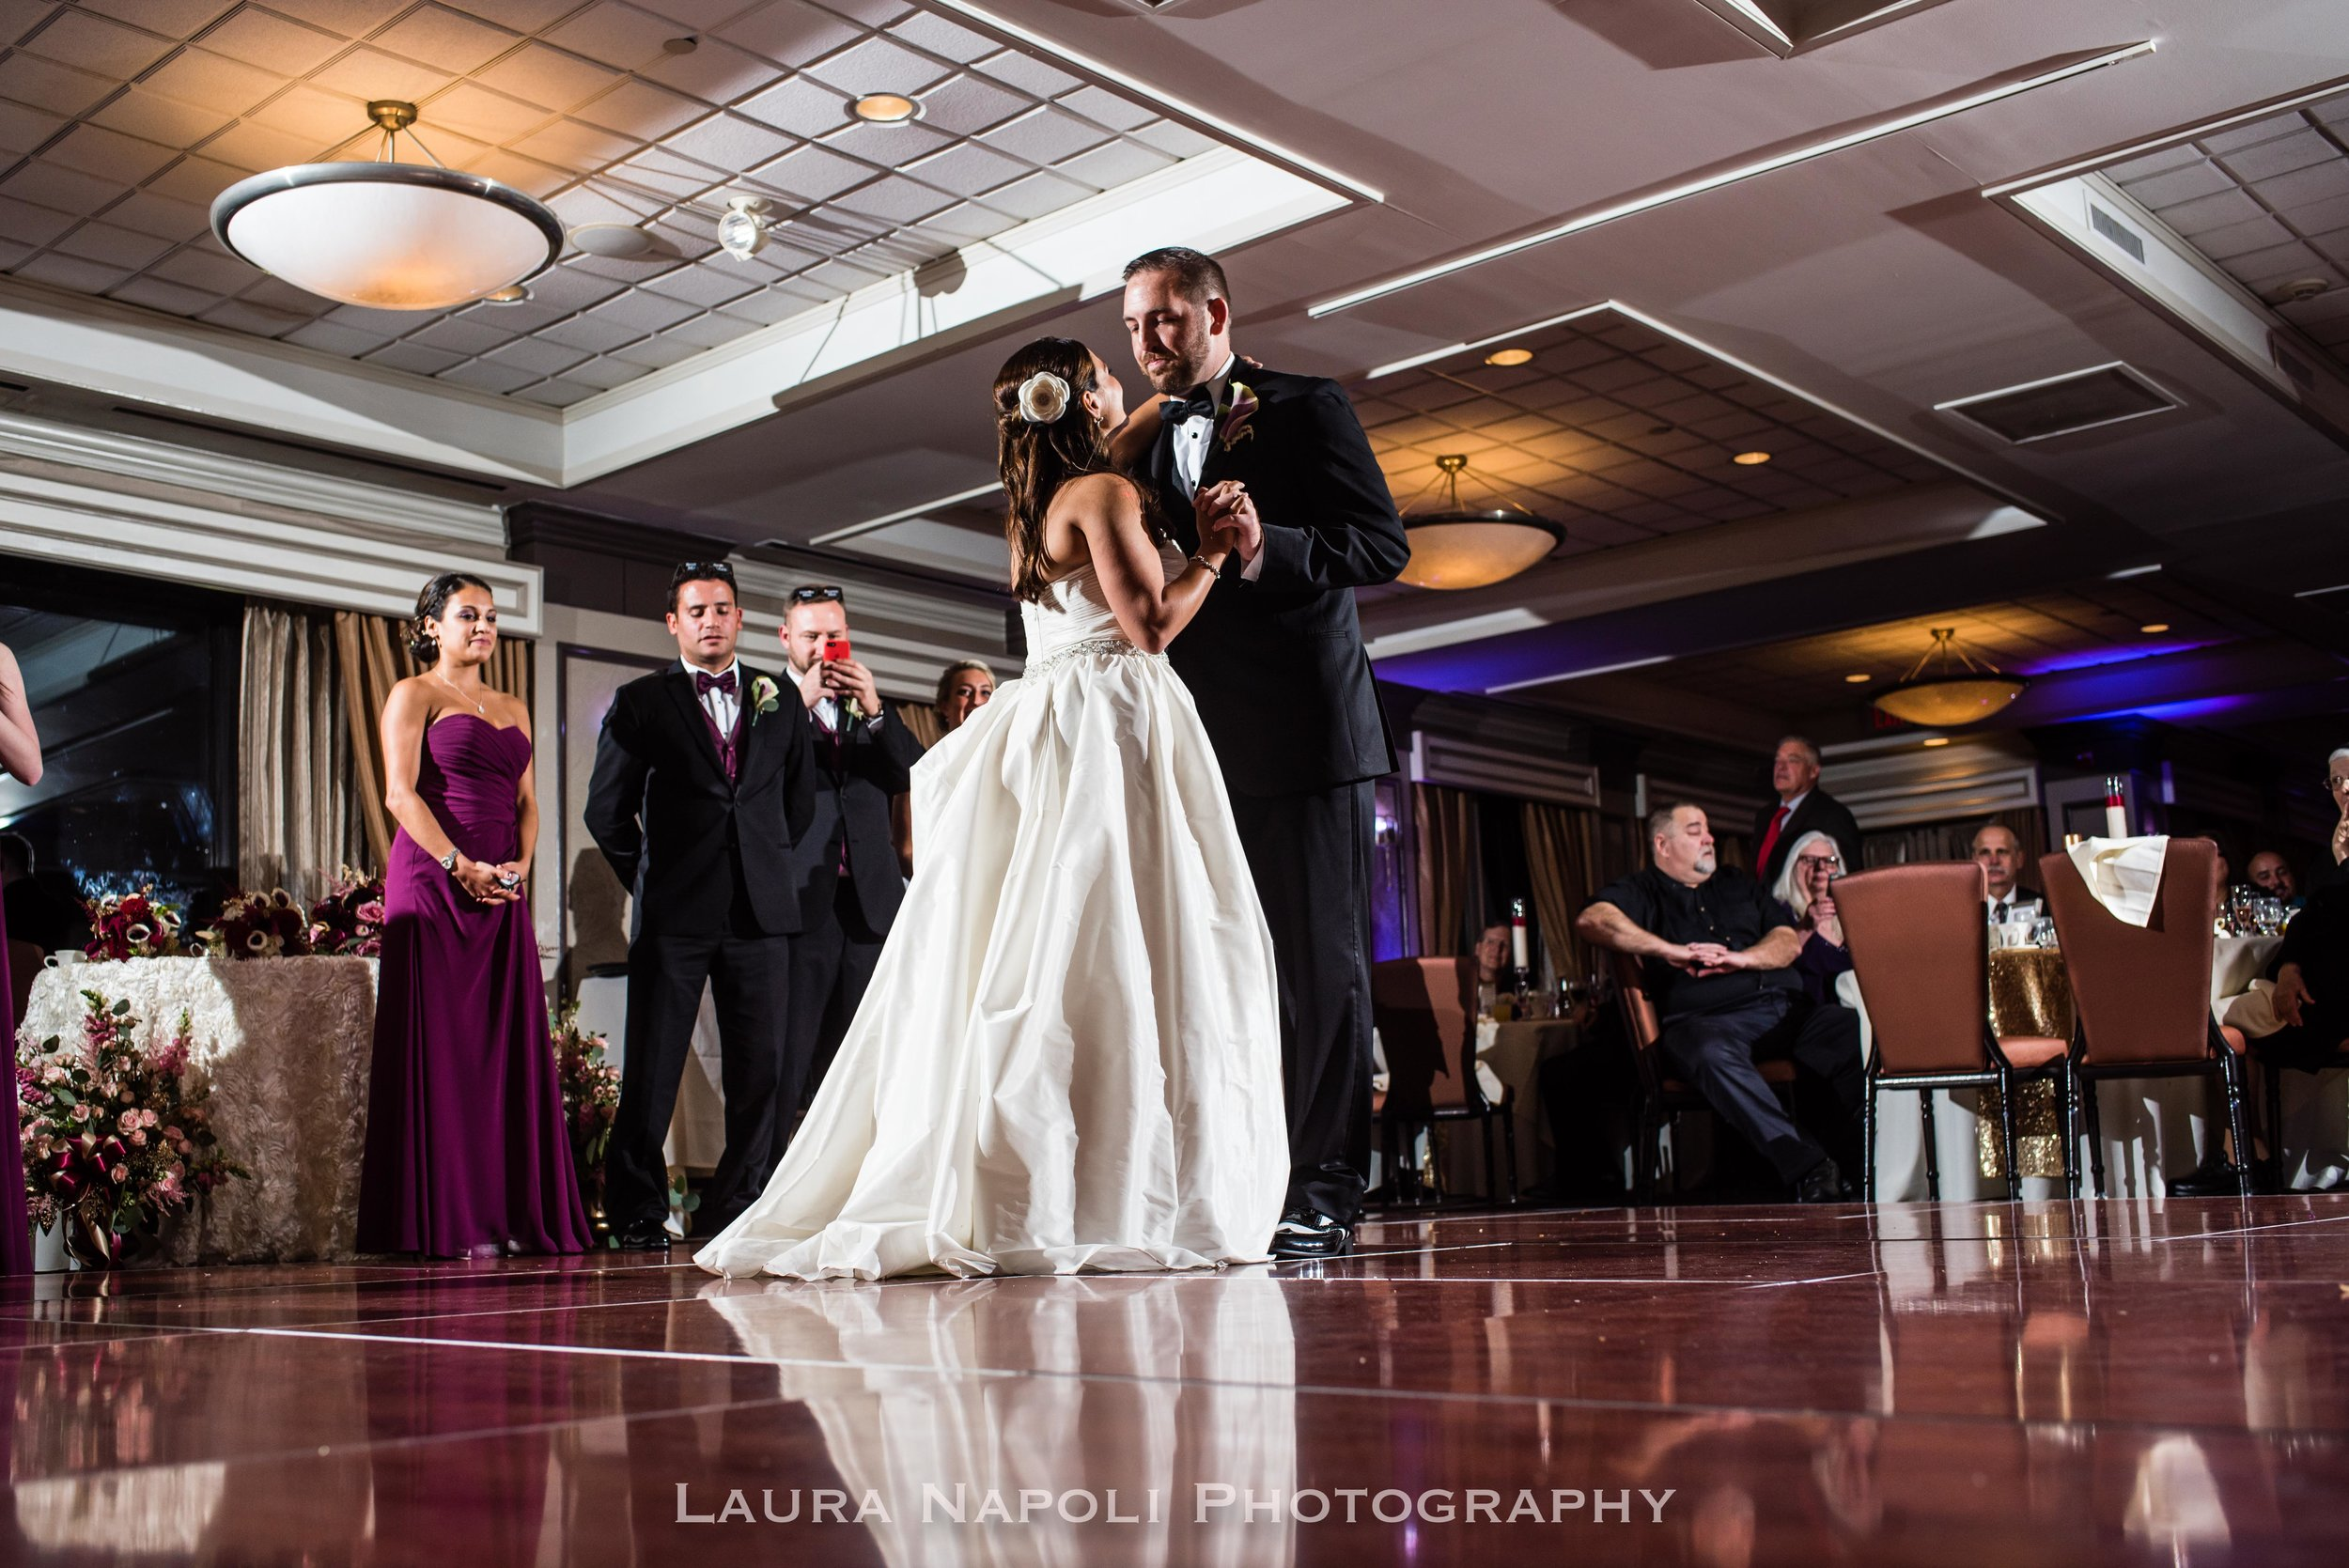 ScotlandRunWilliamstownNJWeddingvenue-11.jpg